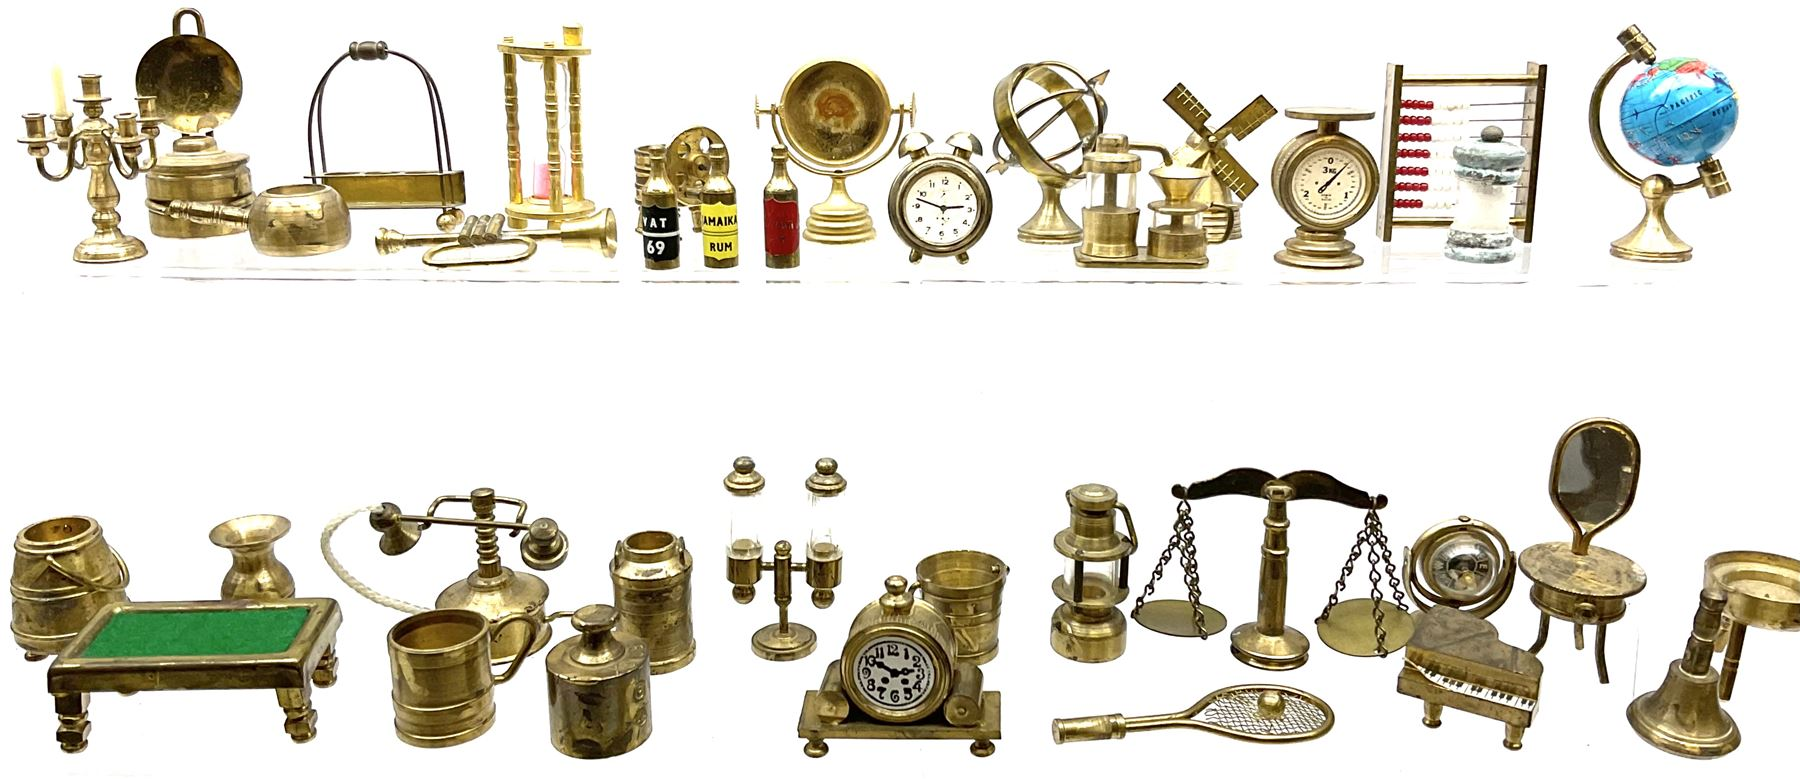 Over one-hundred various scale miniature brass ornaments suitable for decorating doll's houses inclu - Image 3 of 10